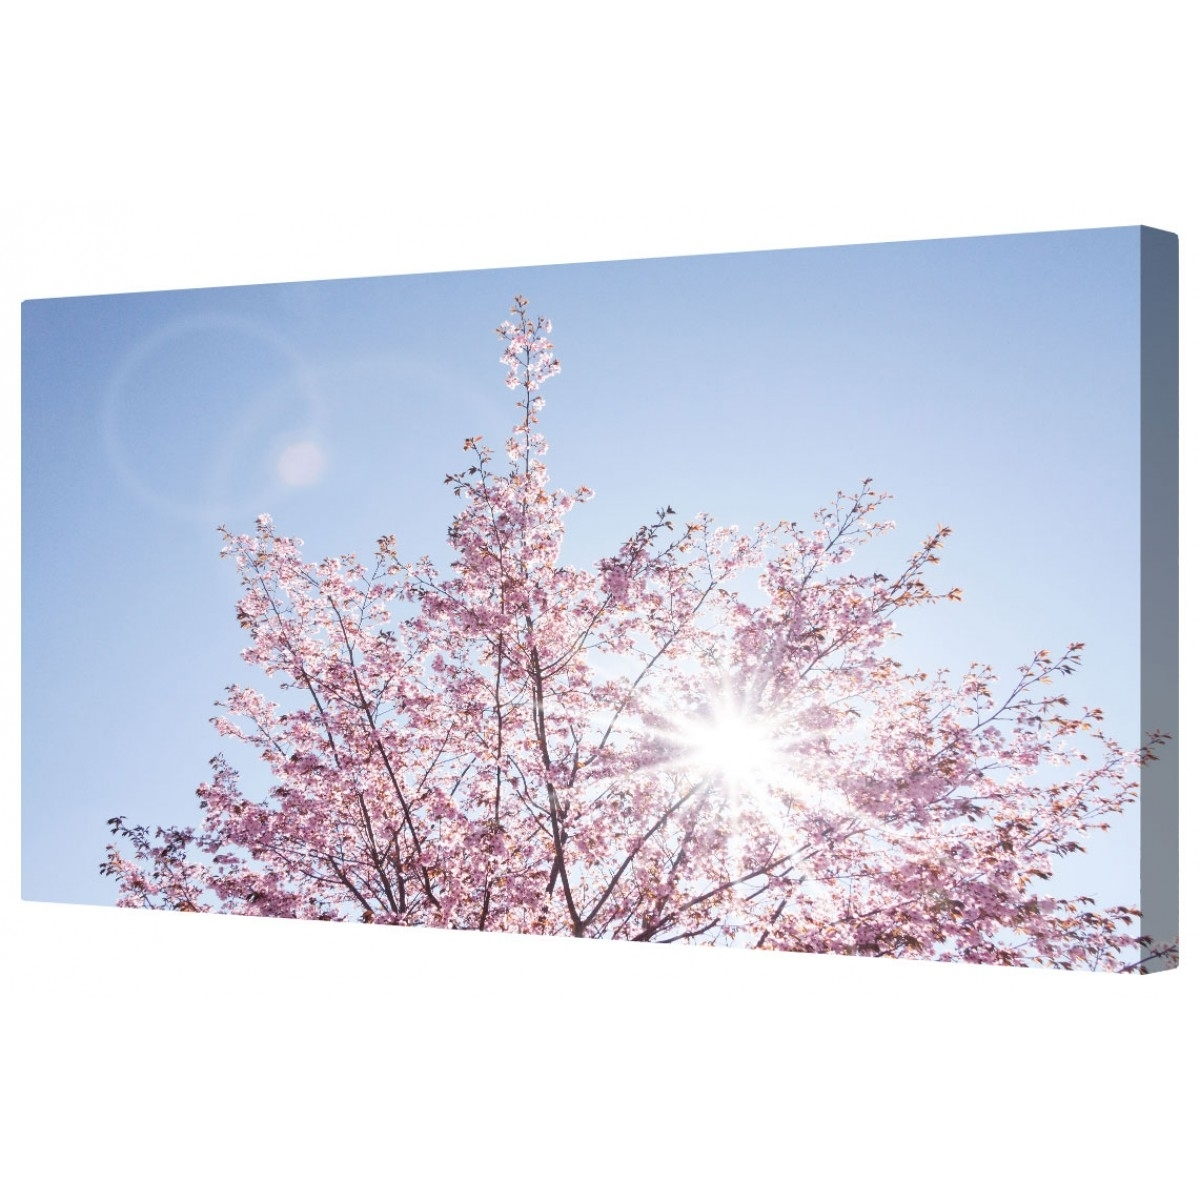 Canvart | Sunlit Cherry Blossom Framed Canvas Wall Art Picture Intended For Current Cherry Blossom Wall Art (Gallery 10 of 20)